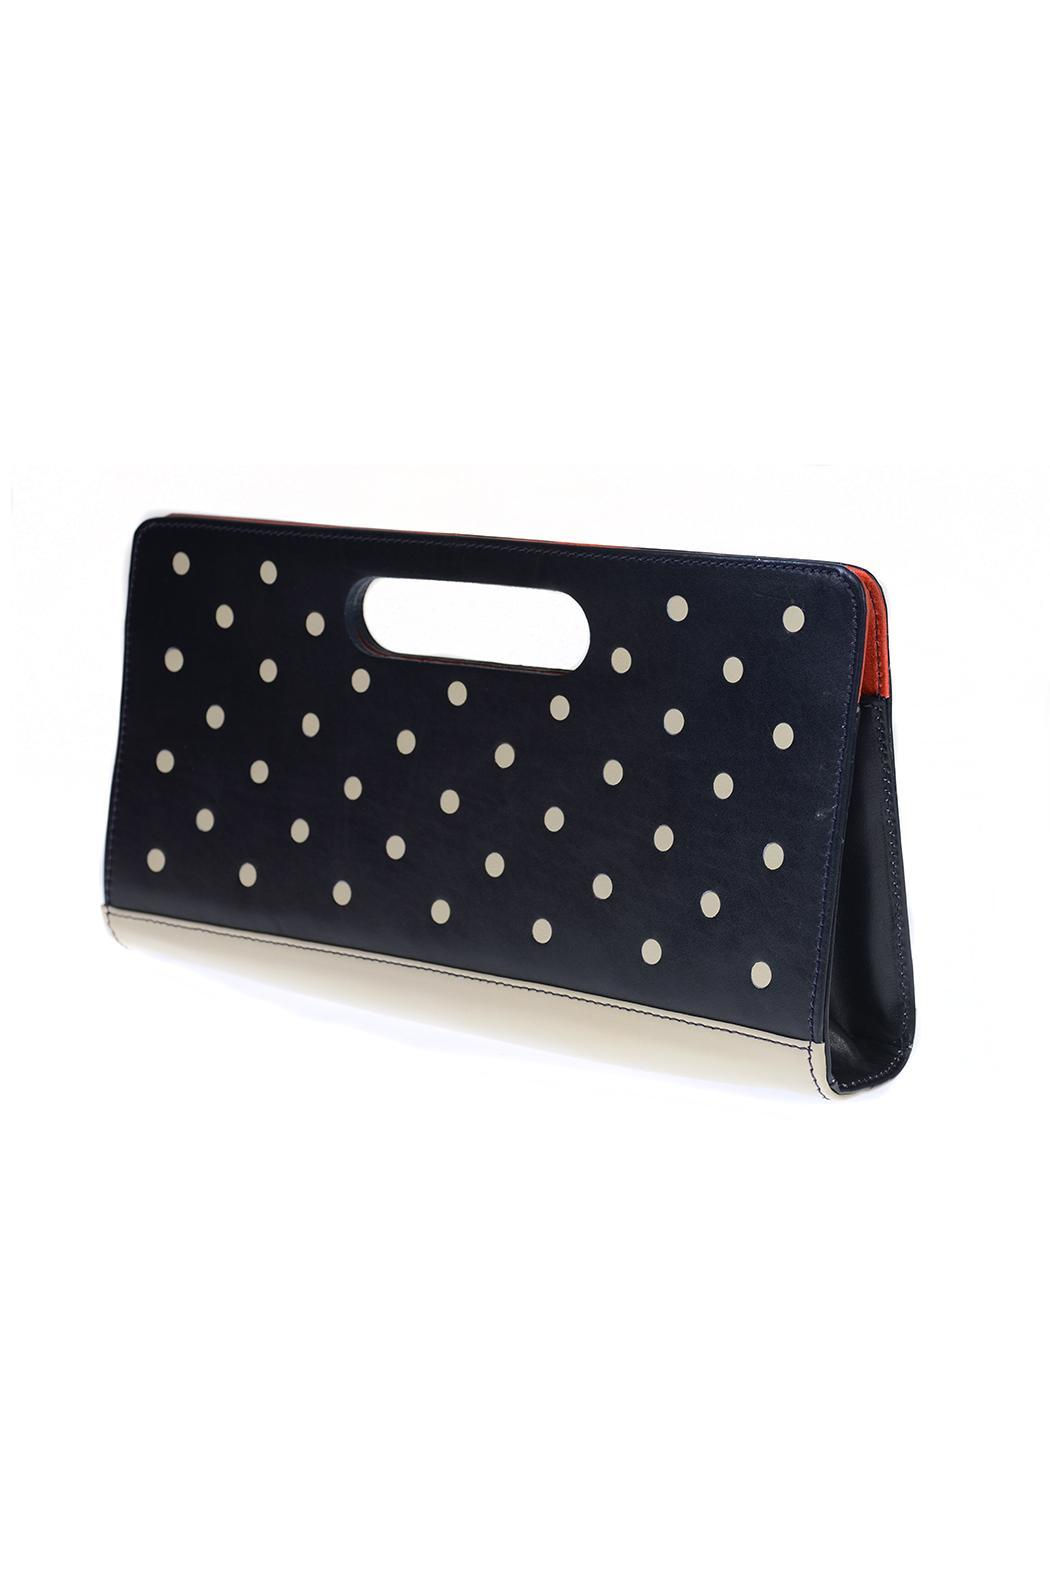 HUMAWACA Dot Leather Clutch - Front Full Image